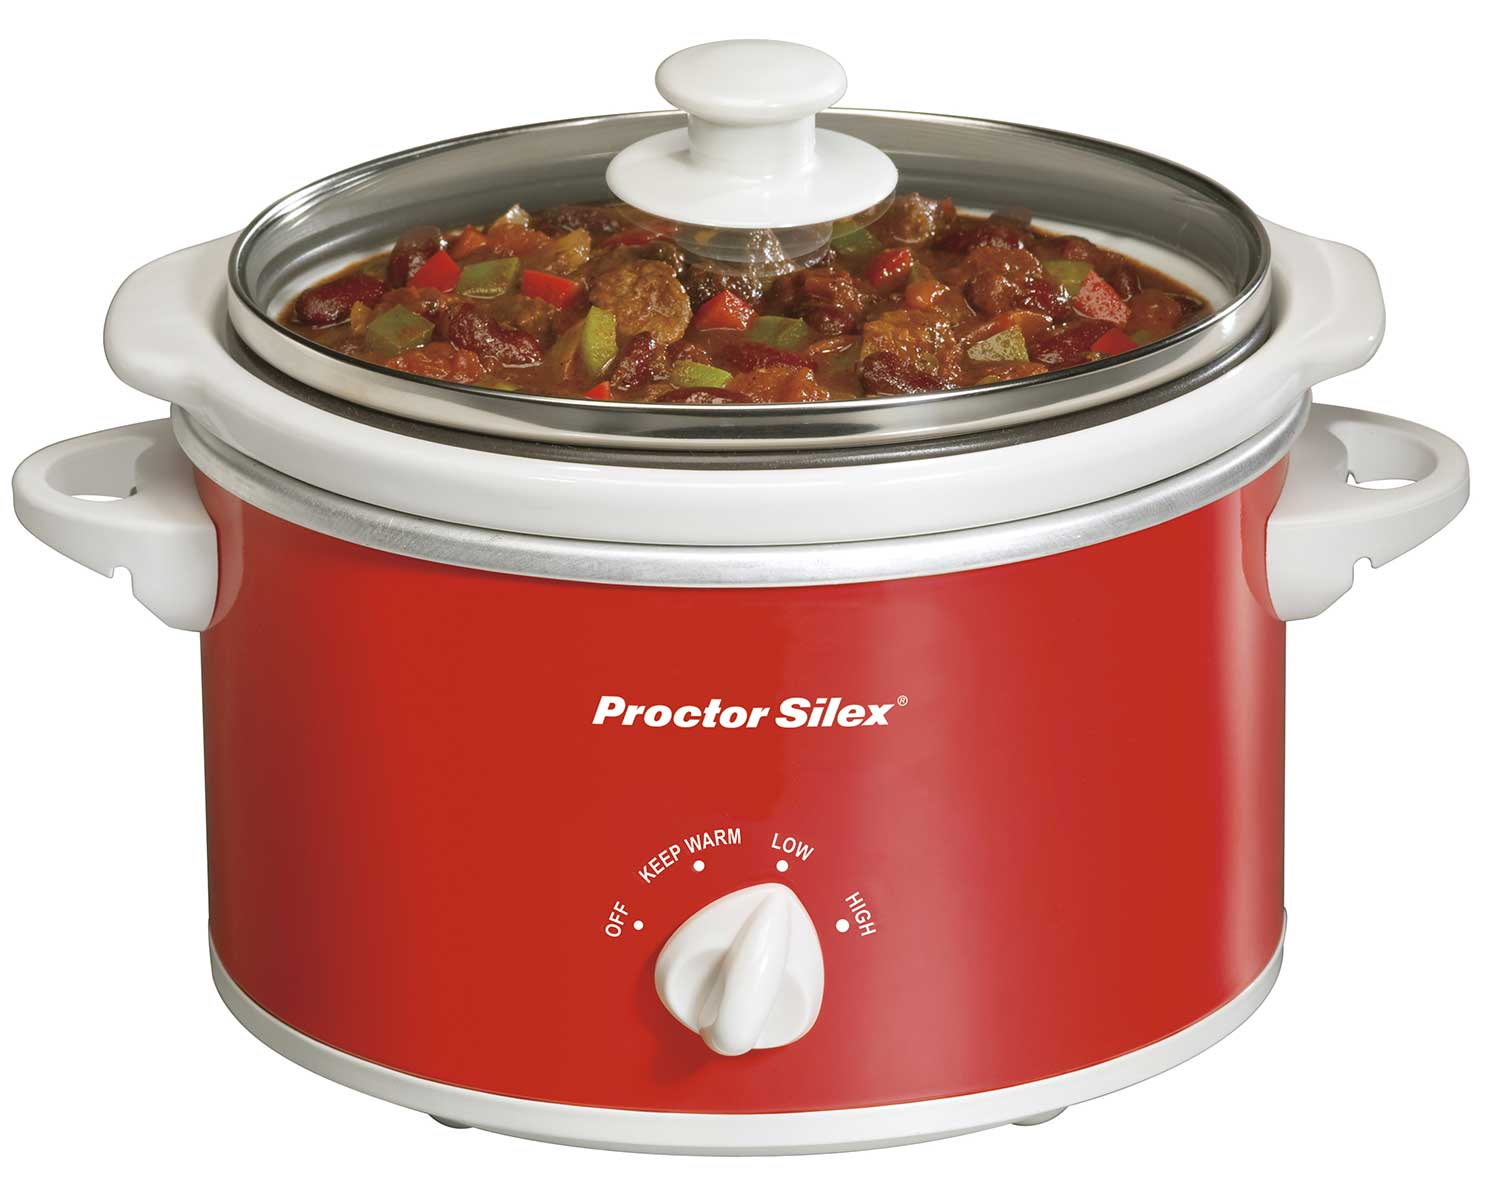 Portable 1.5 Quart Slow Cooker (red)-33111Y